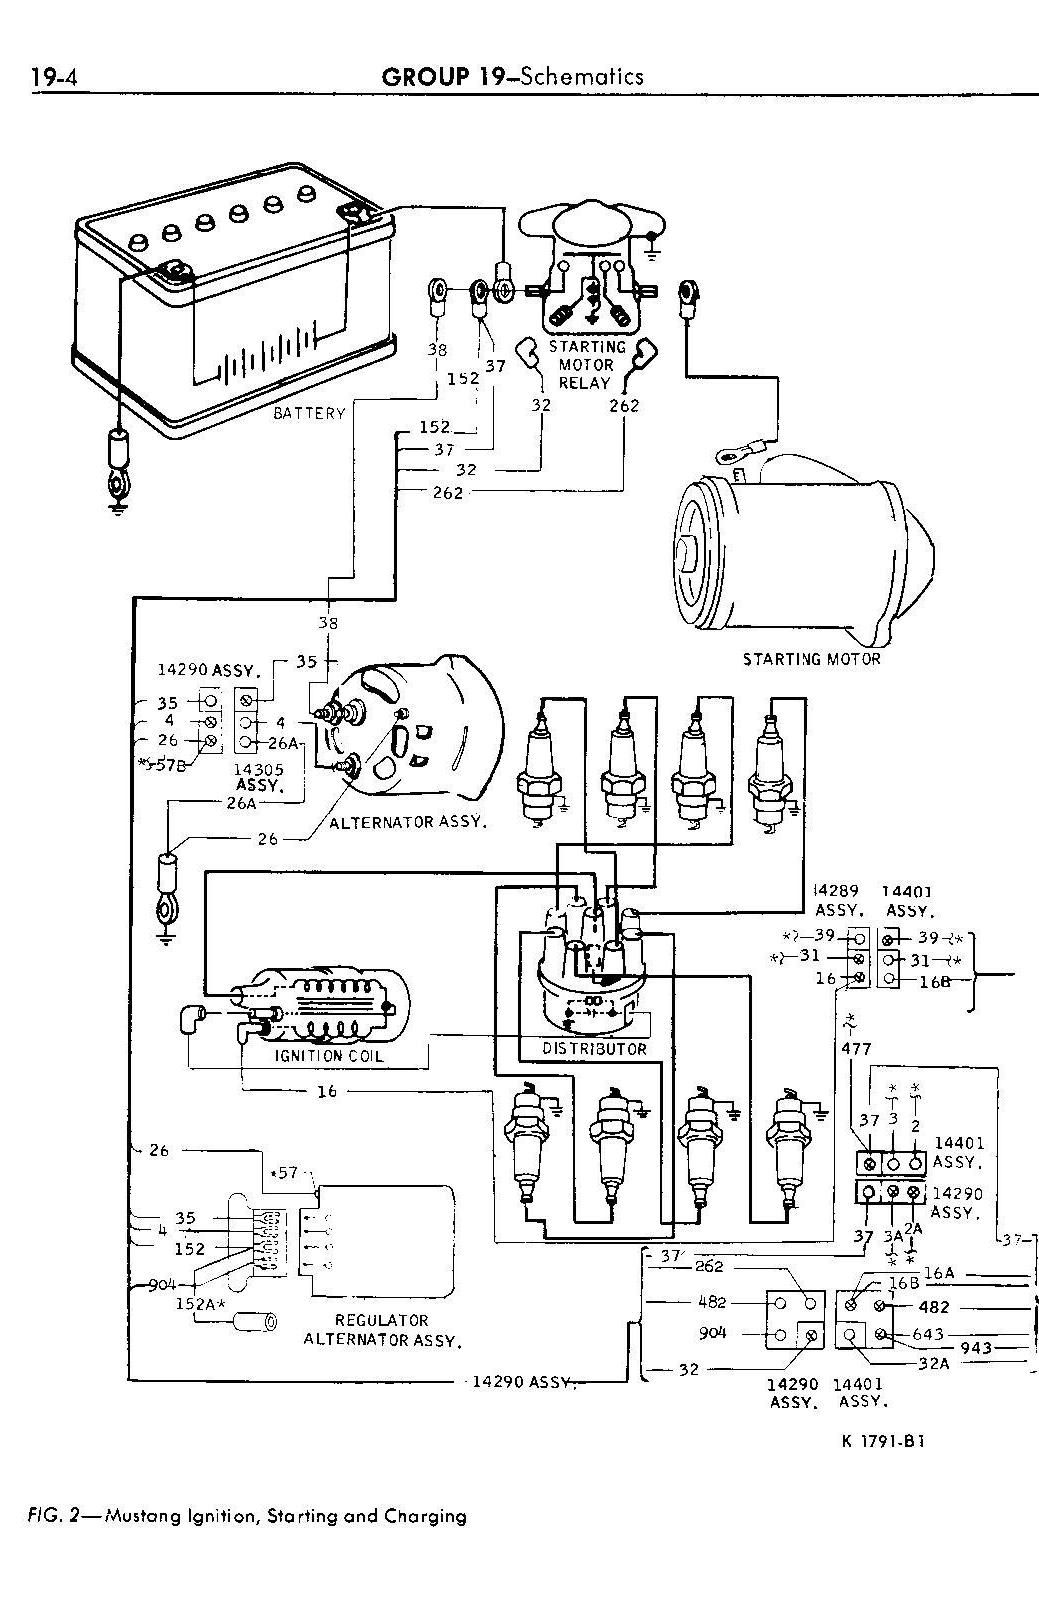 Wiring Diagram For Neutral Safety Switch - Wiring Diagrams DataUssel